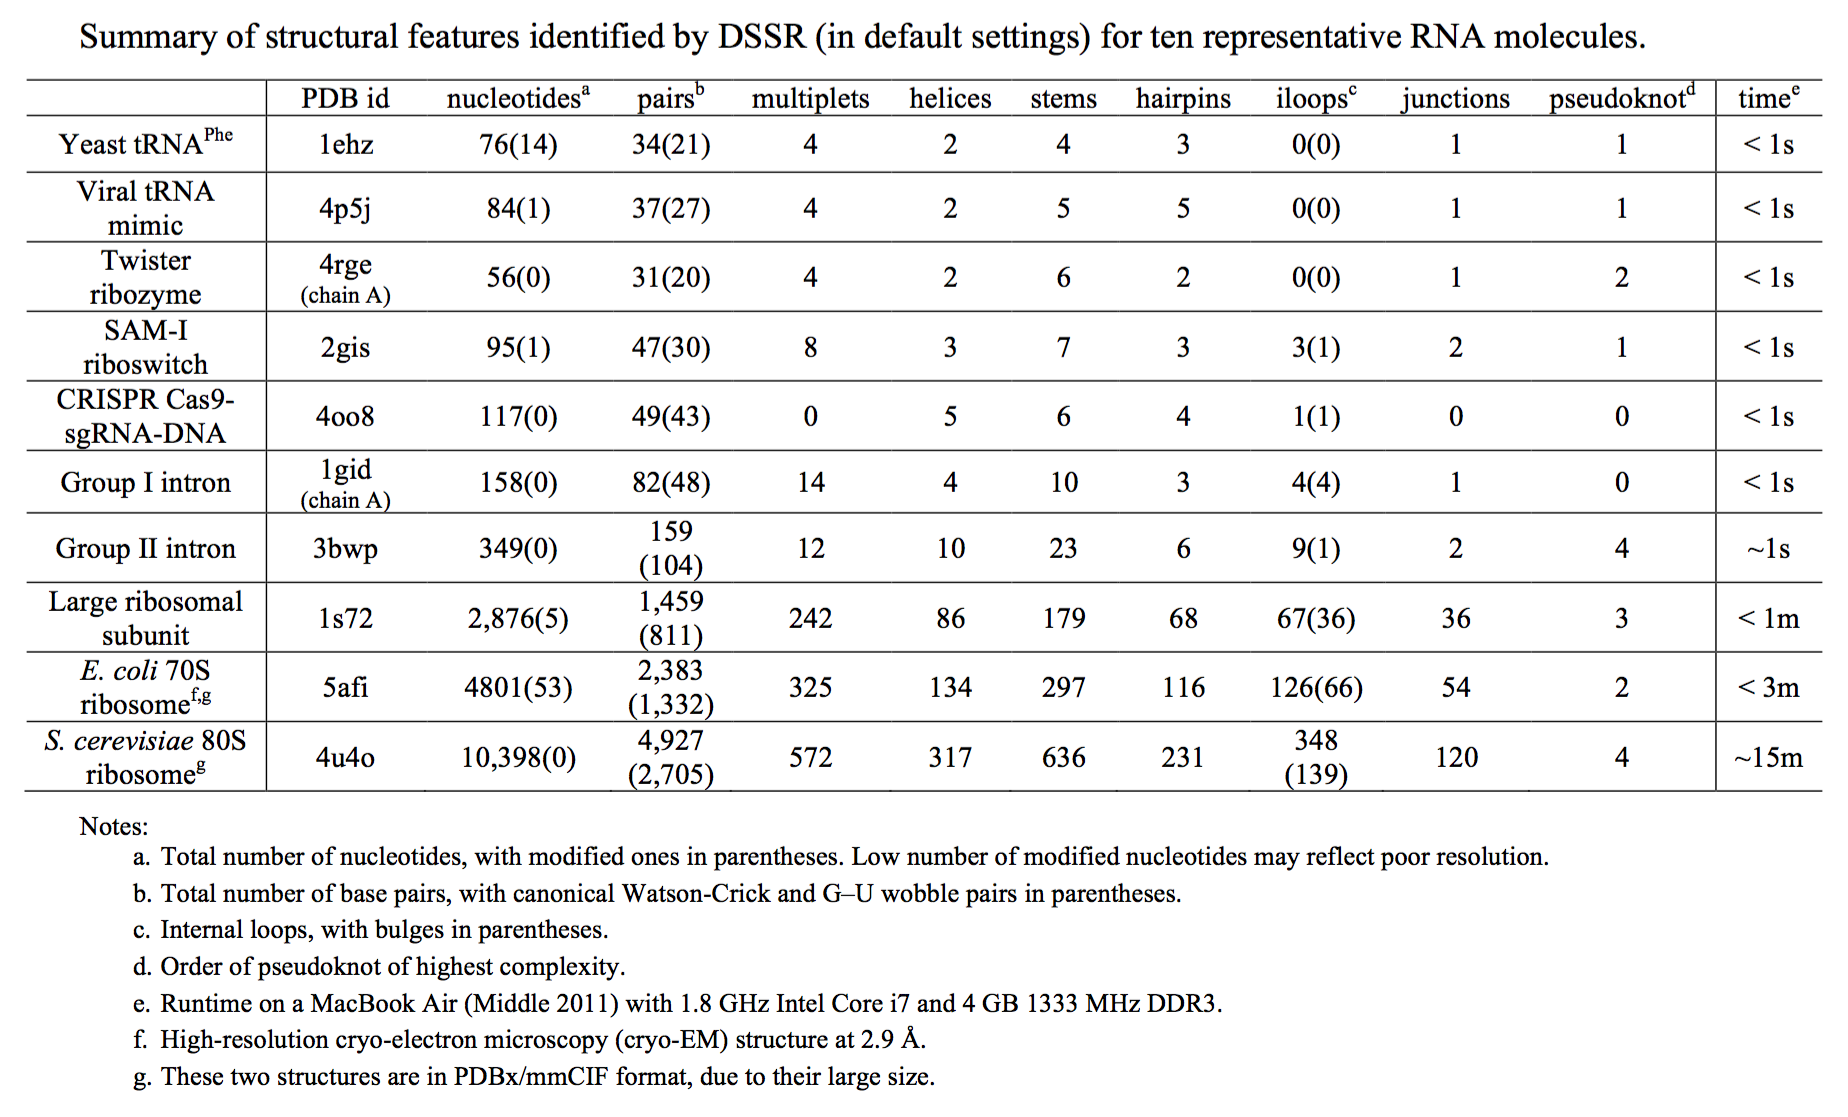 """DSSR summary table"" title=""Summary of structural features identified by DSSR (in default settings) for ten representative RNA molecules"""